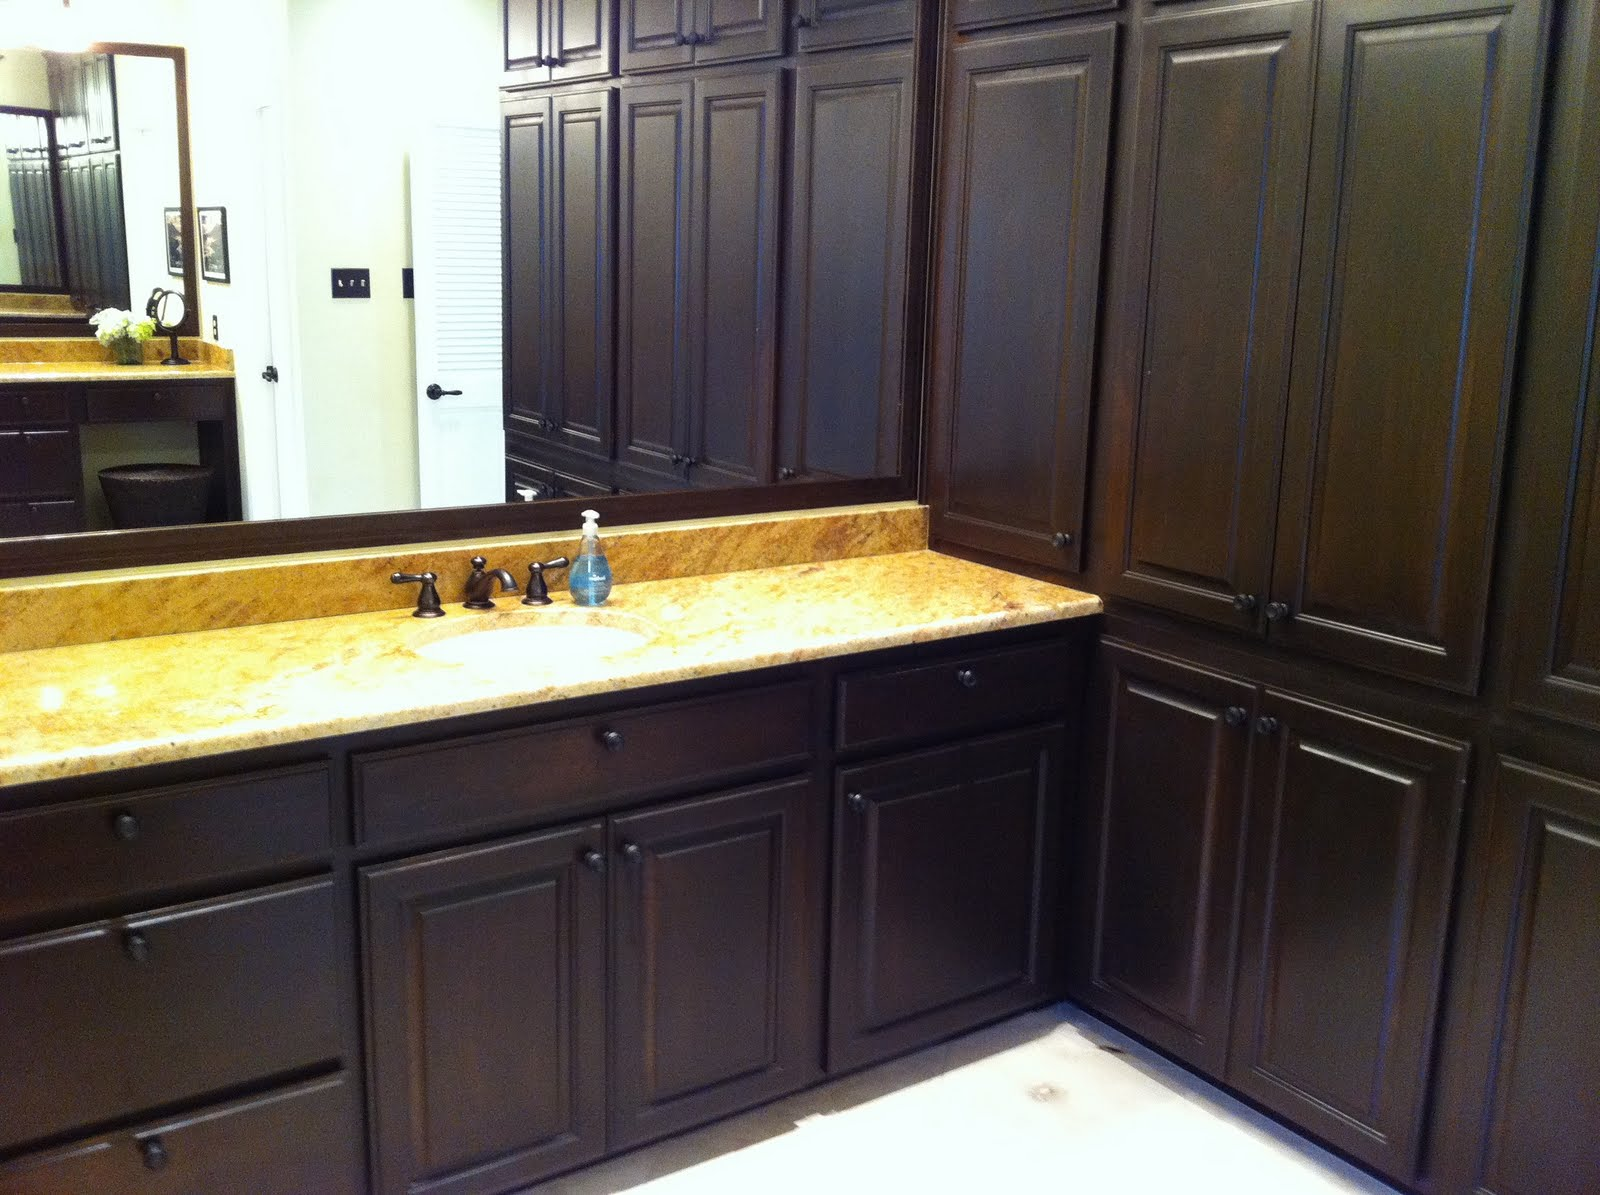 Kitchen wall colors with dark cabinets - The Cul De Sac Welcome To My Home Master Bath Makeover